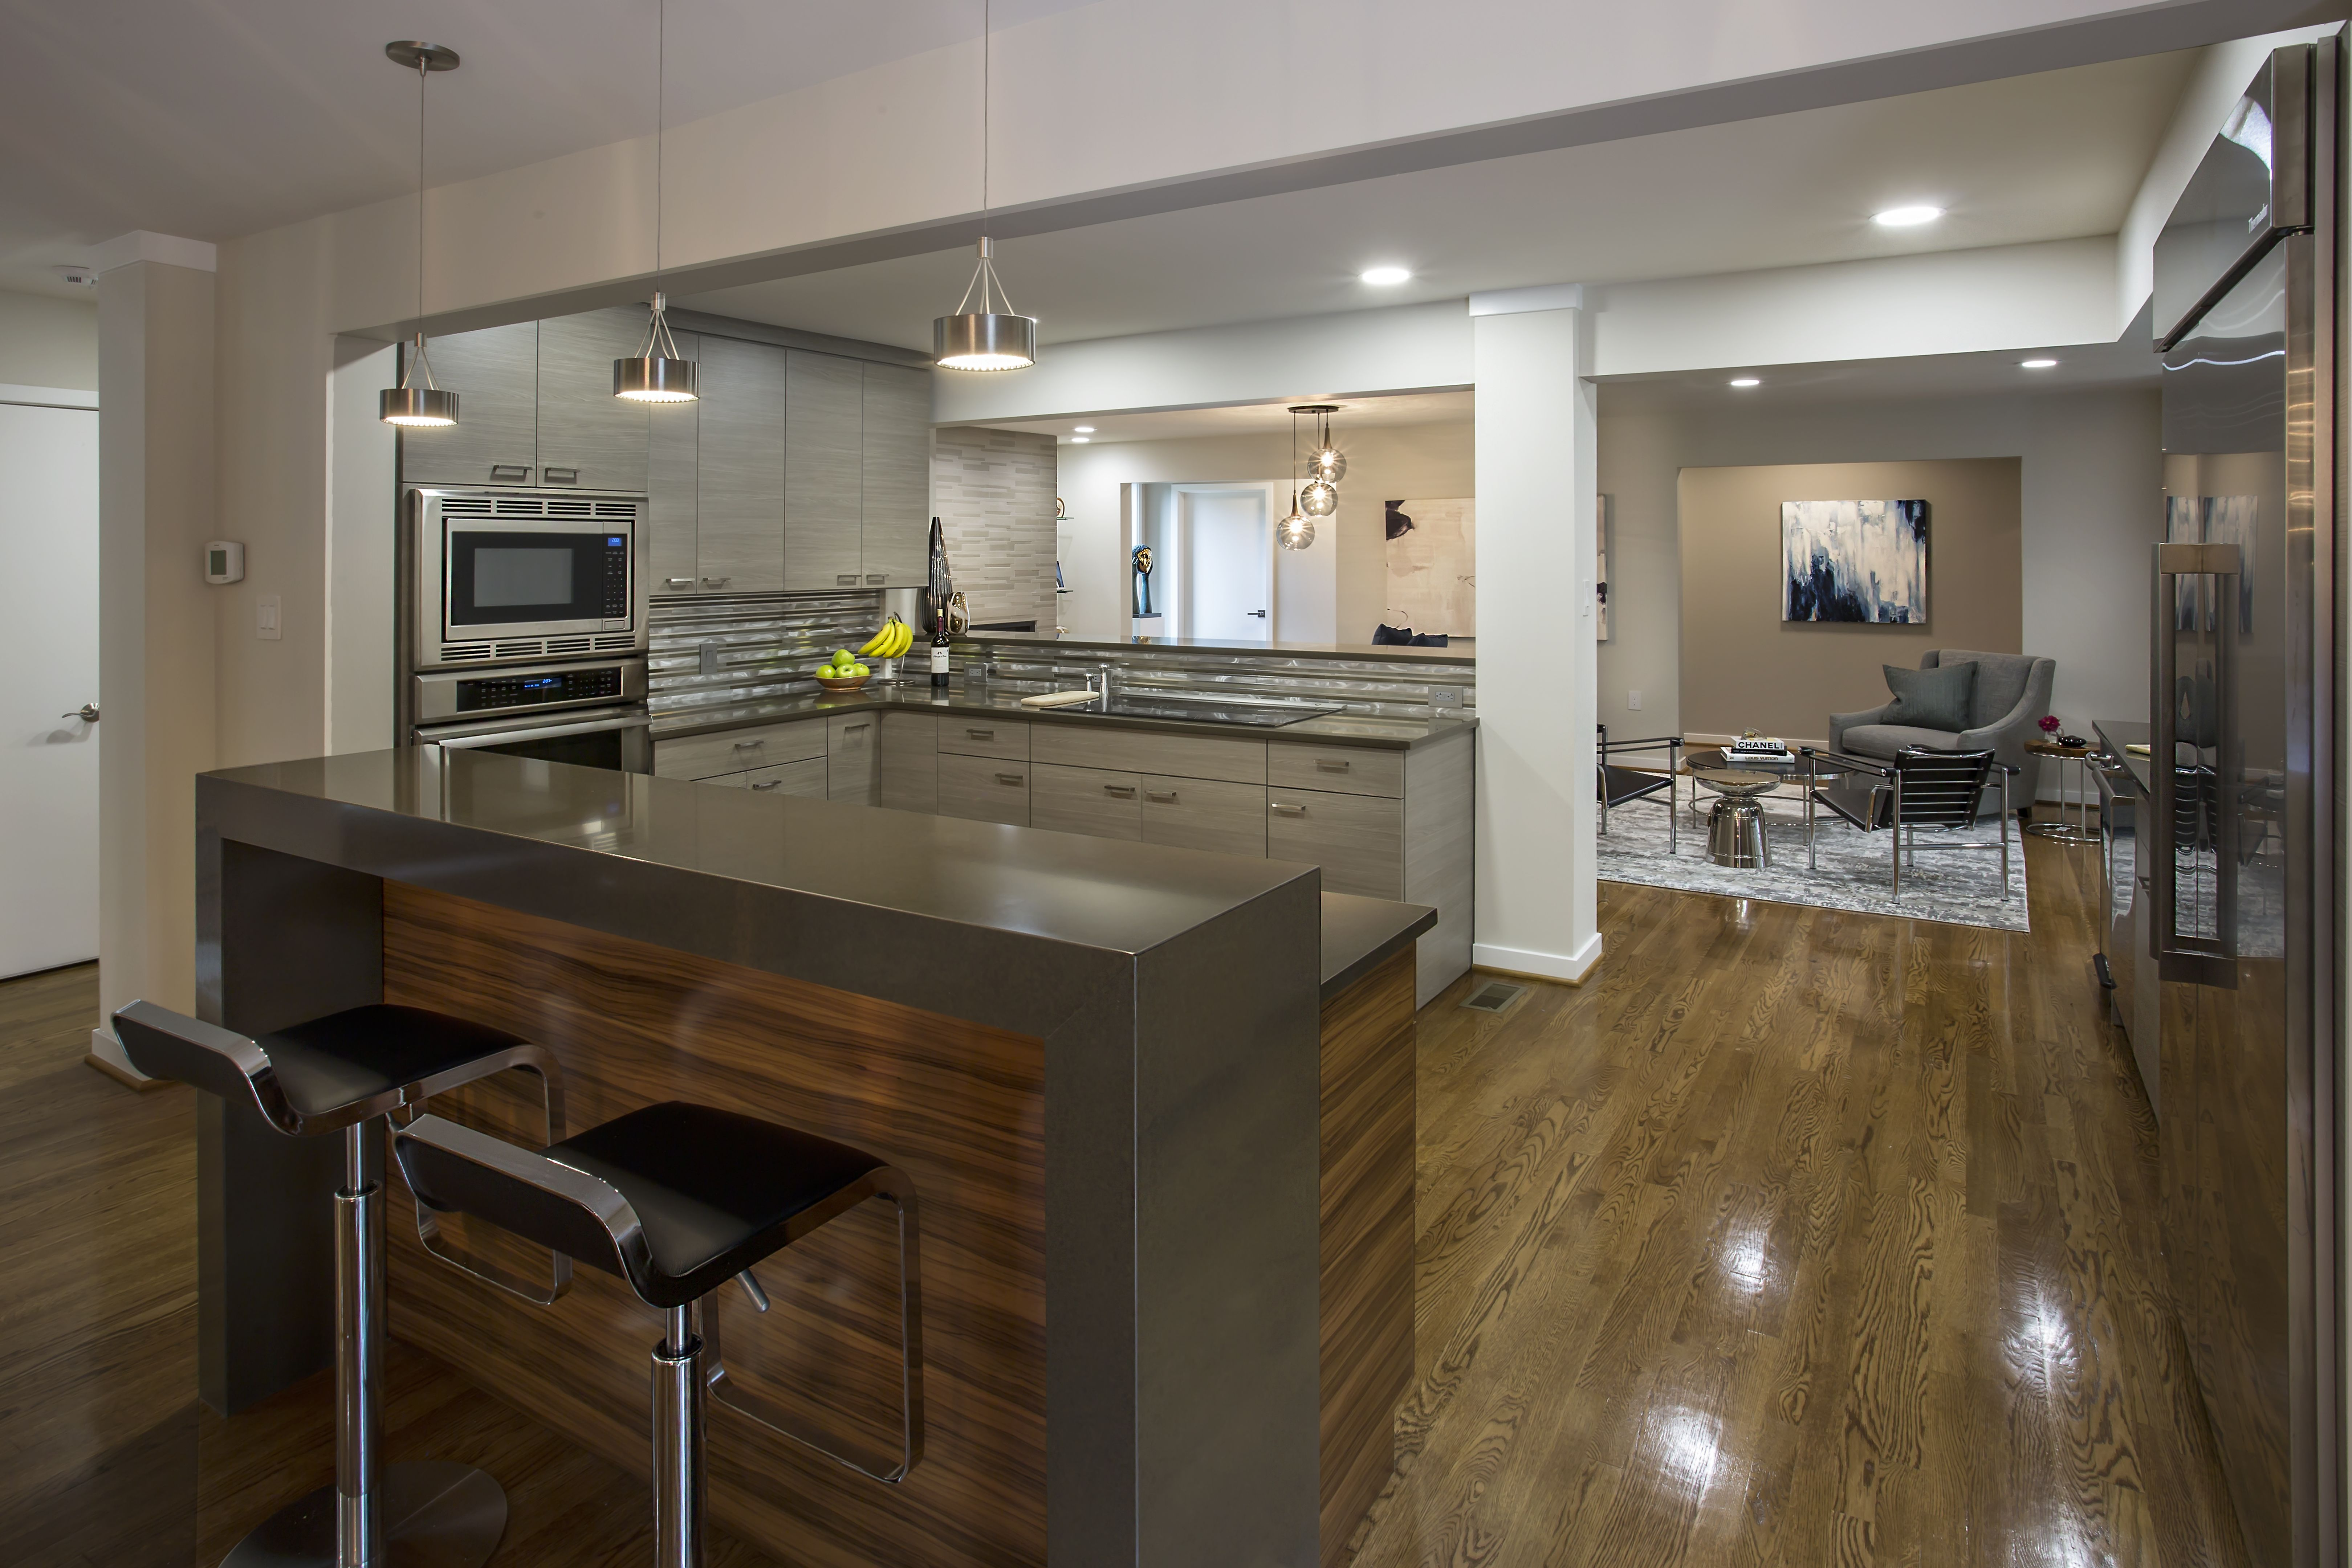 kitchen remodeling project by vmax llc in richmond,va   vmax homes